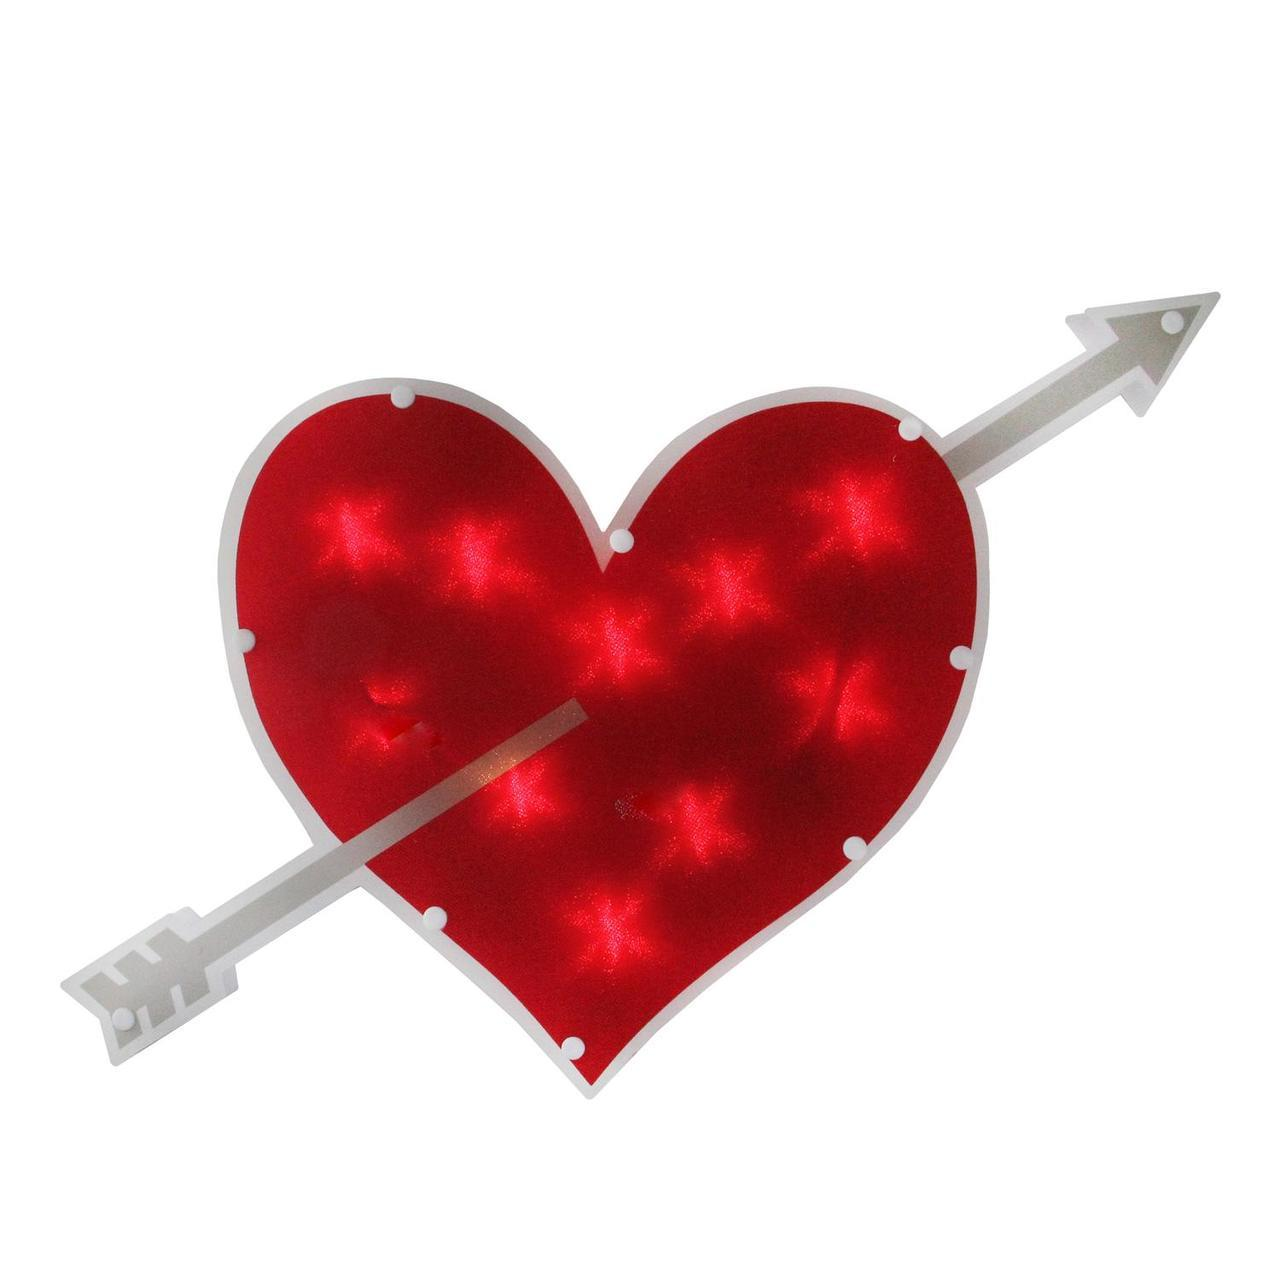 1280x1280 18 Lighted Red Heart With Arrow Valentine's Day Window Silhouette